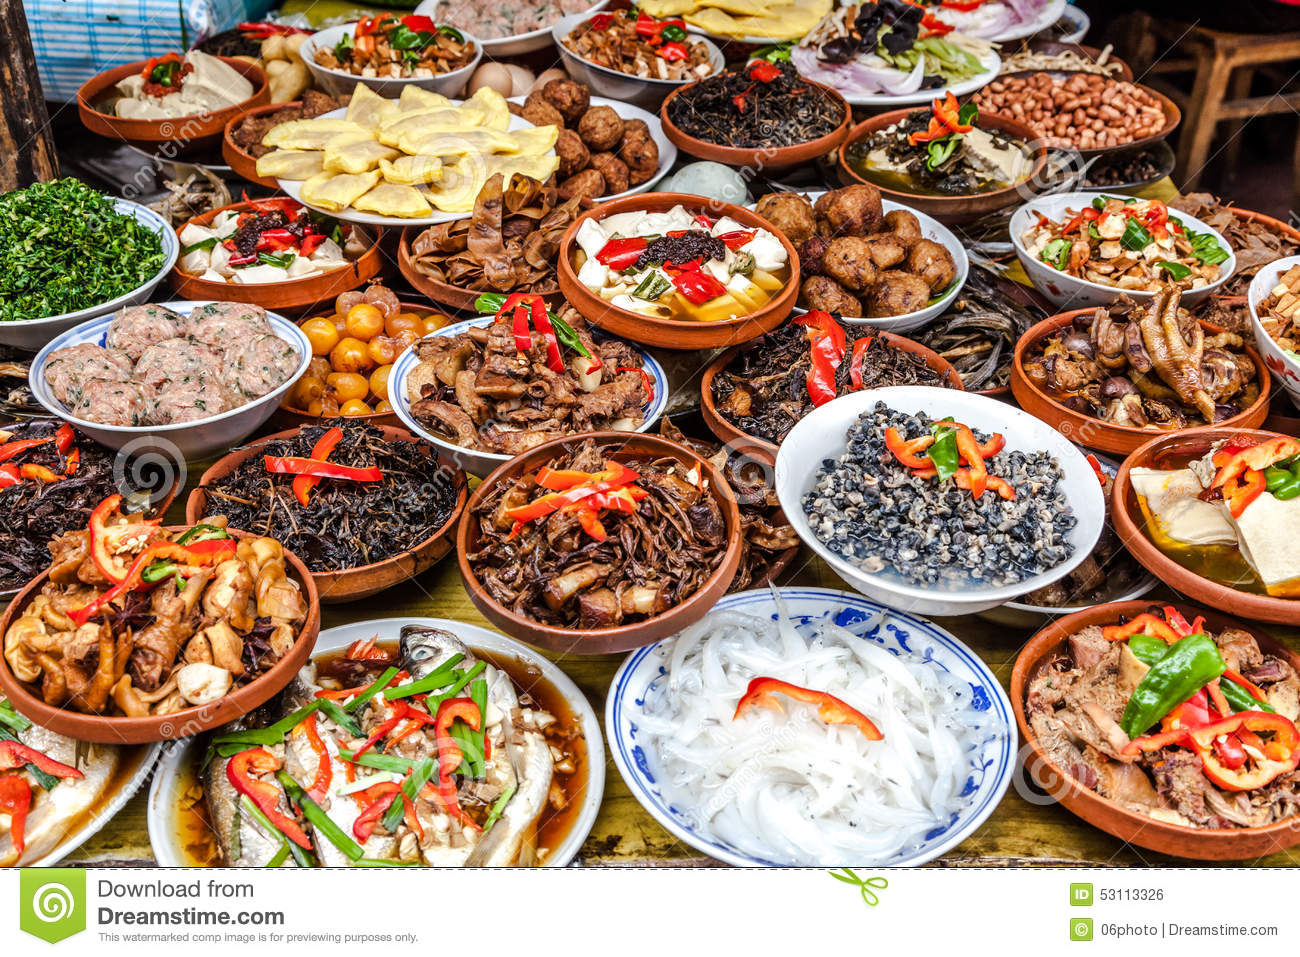 Chinese Food Image Download